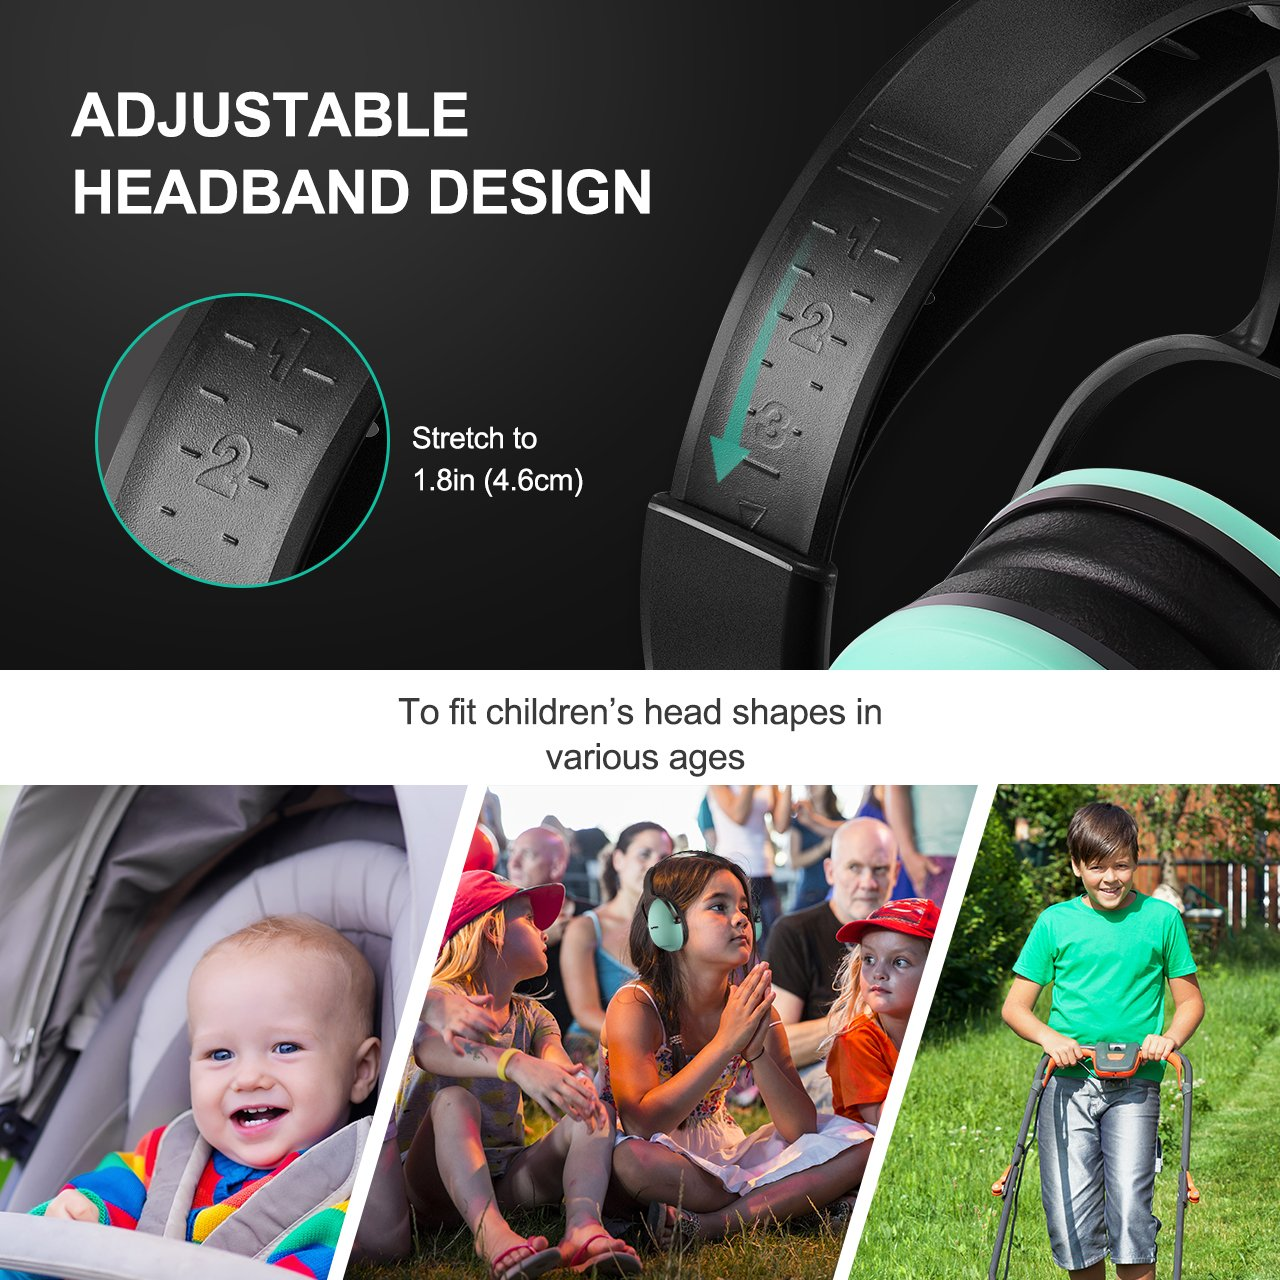 Mpow [Upgraded] Toddler Ear Protection Noise Cancelling Headphones for Kids, NRR 22dB Adjustable & Soft Kids Ear Protection for Shooting Range Hunting, Hearing Protection for Kids Toddlers Children by Mpow (Image #2)